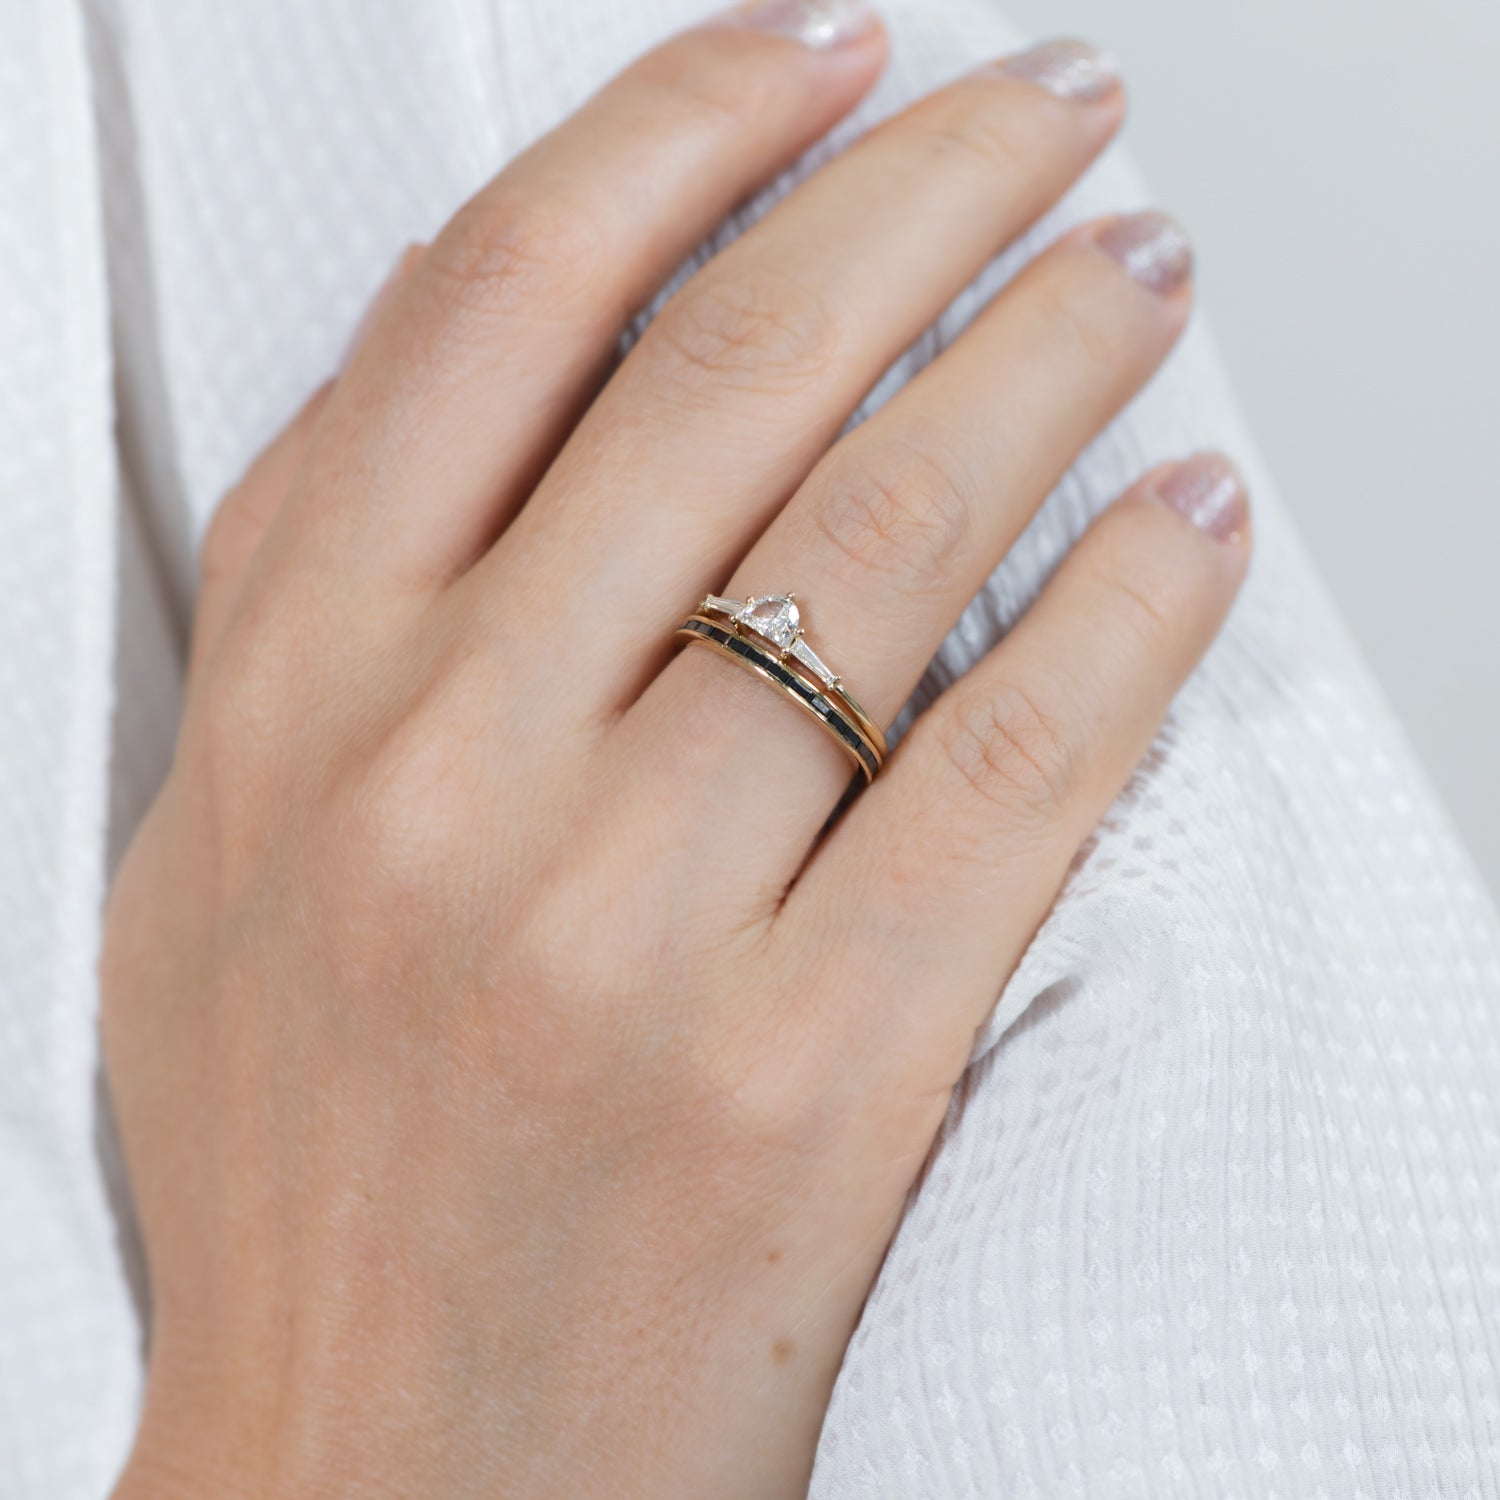 Three-Stone-Engagement-Ring-with-Half-Moon-and-Baguette-Cut-Diamonds-side-shot-in-set